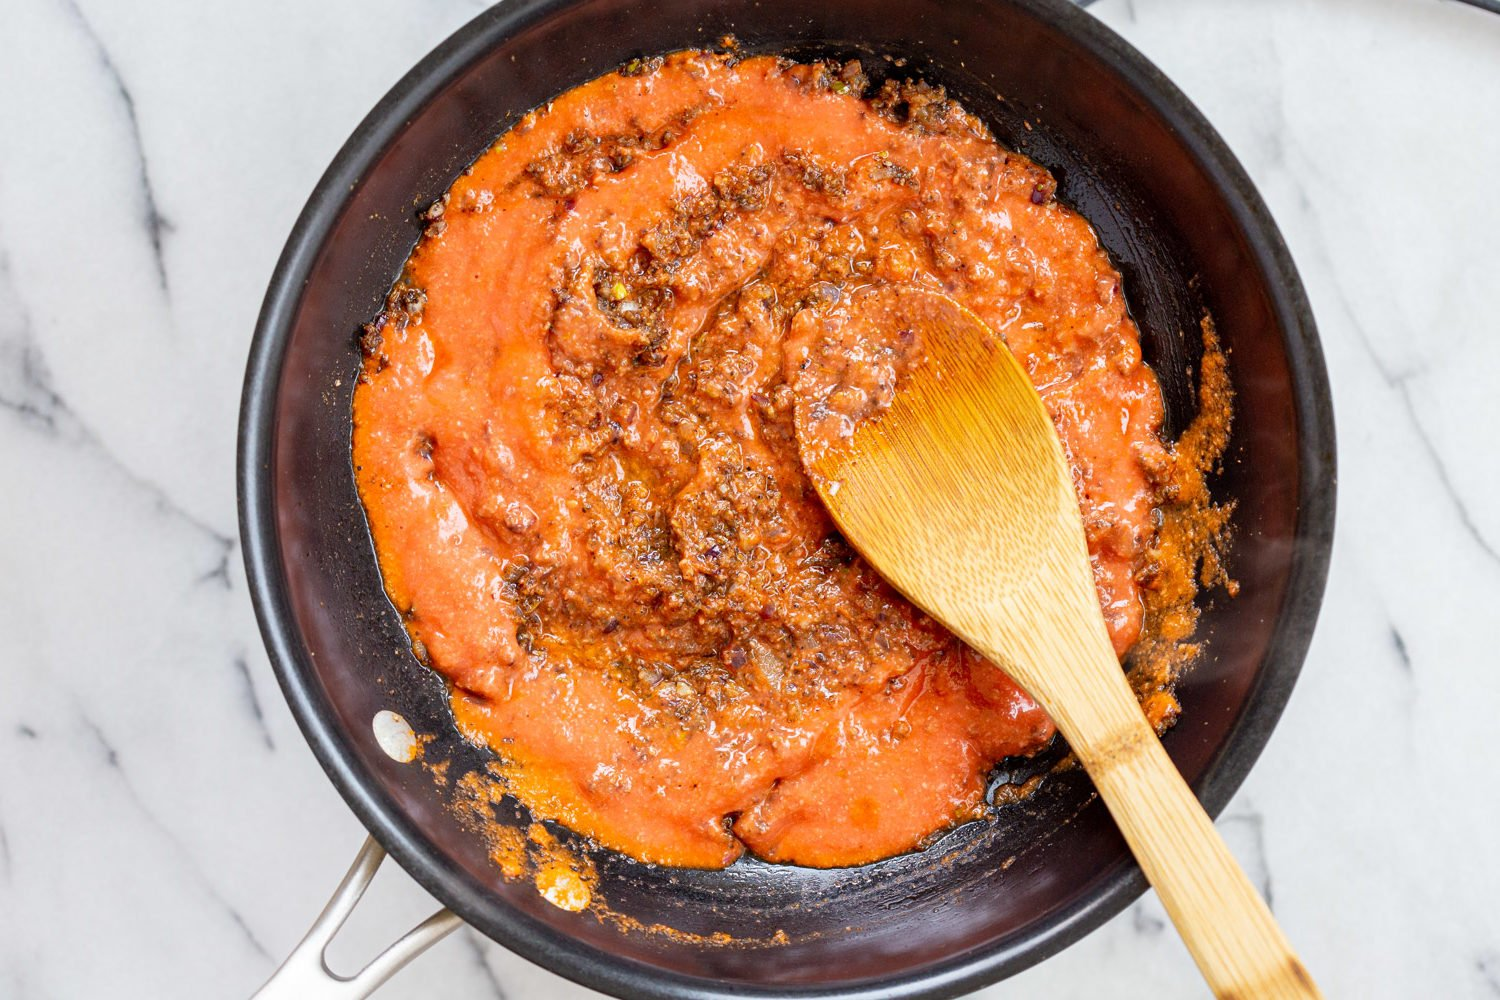 Tomato puree for our Vegan Keema Madras on a black skillet